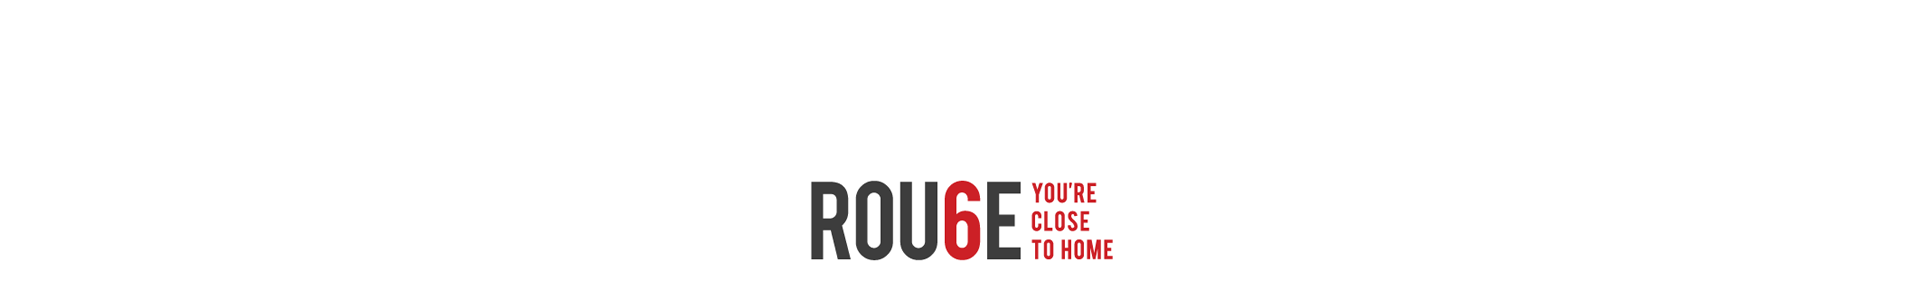 Rouge Condo Montreal, you're close to home